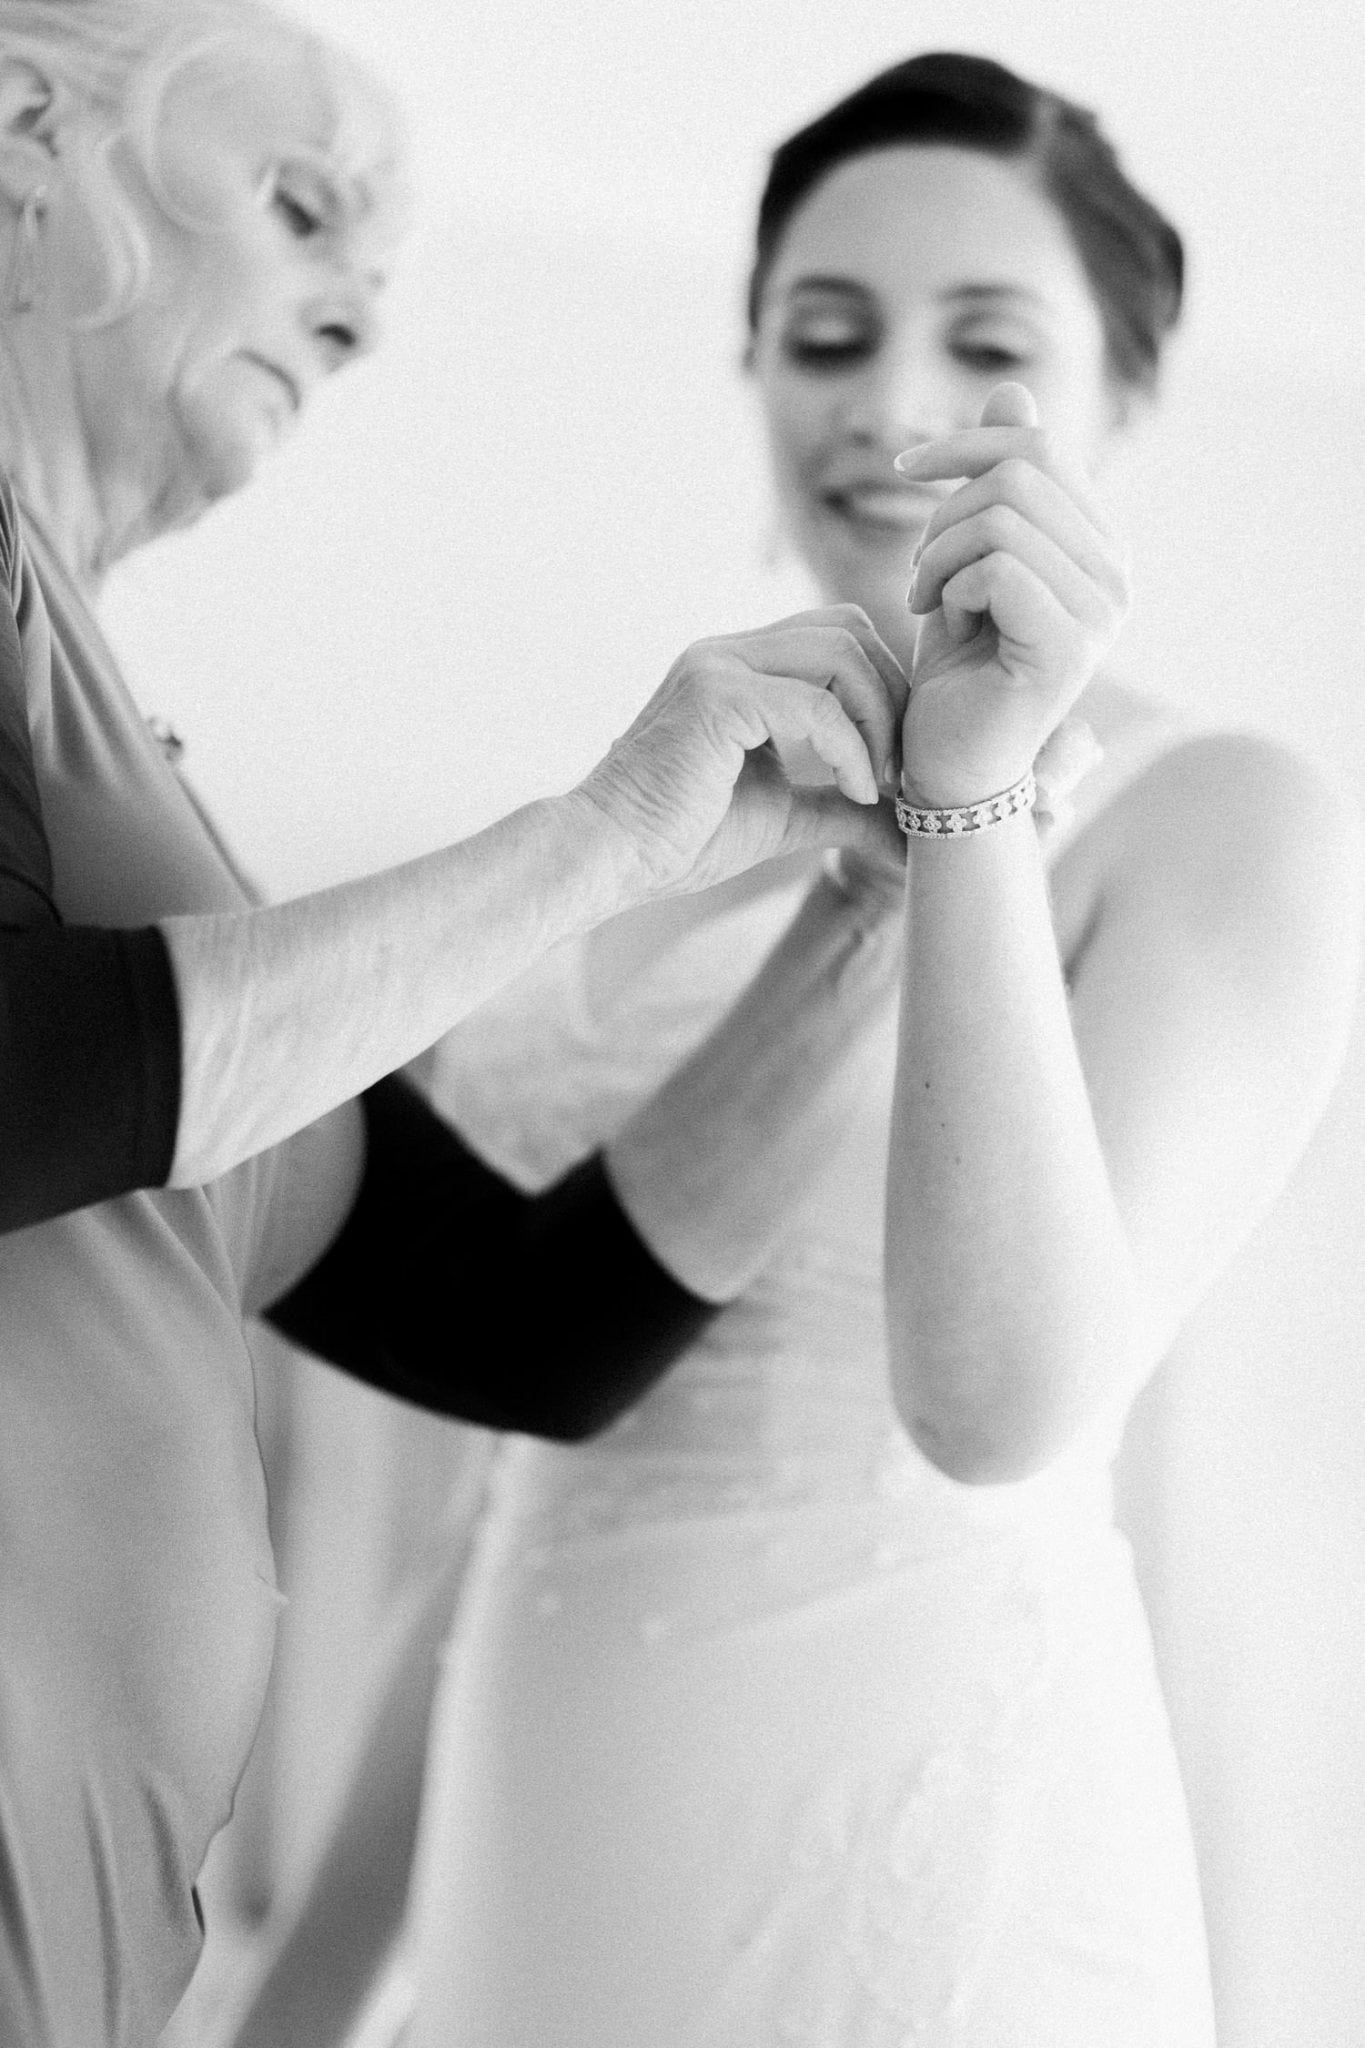 Mom putting a bracelet on the bride | Vancouver wedding photographer